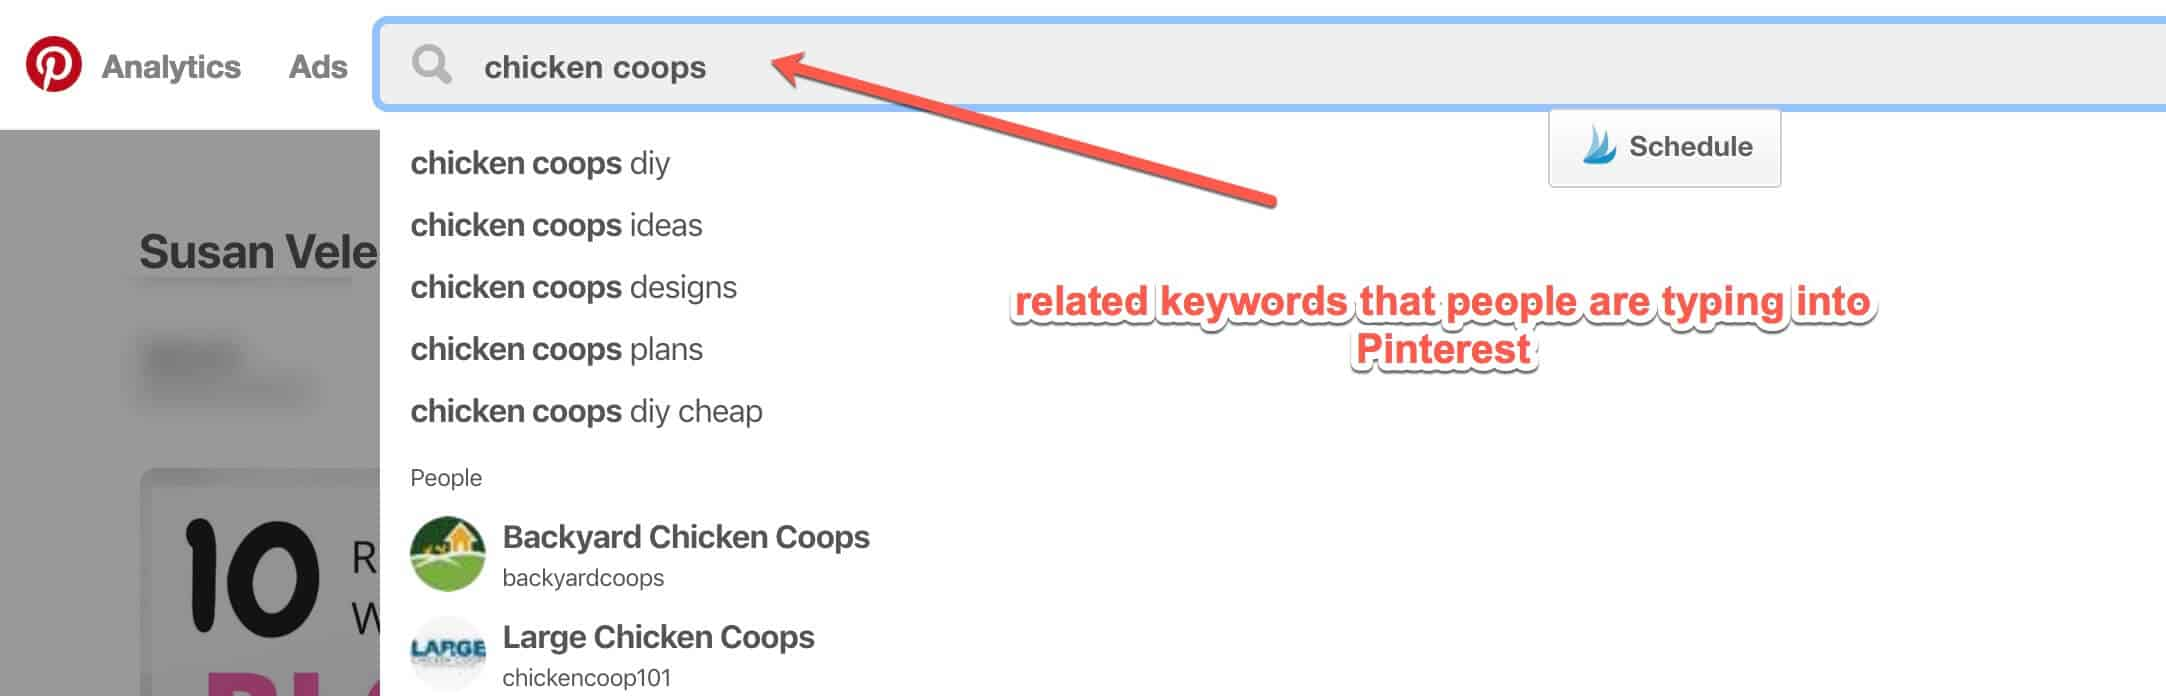 related keywords in Pinterest